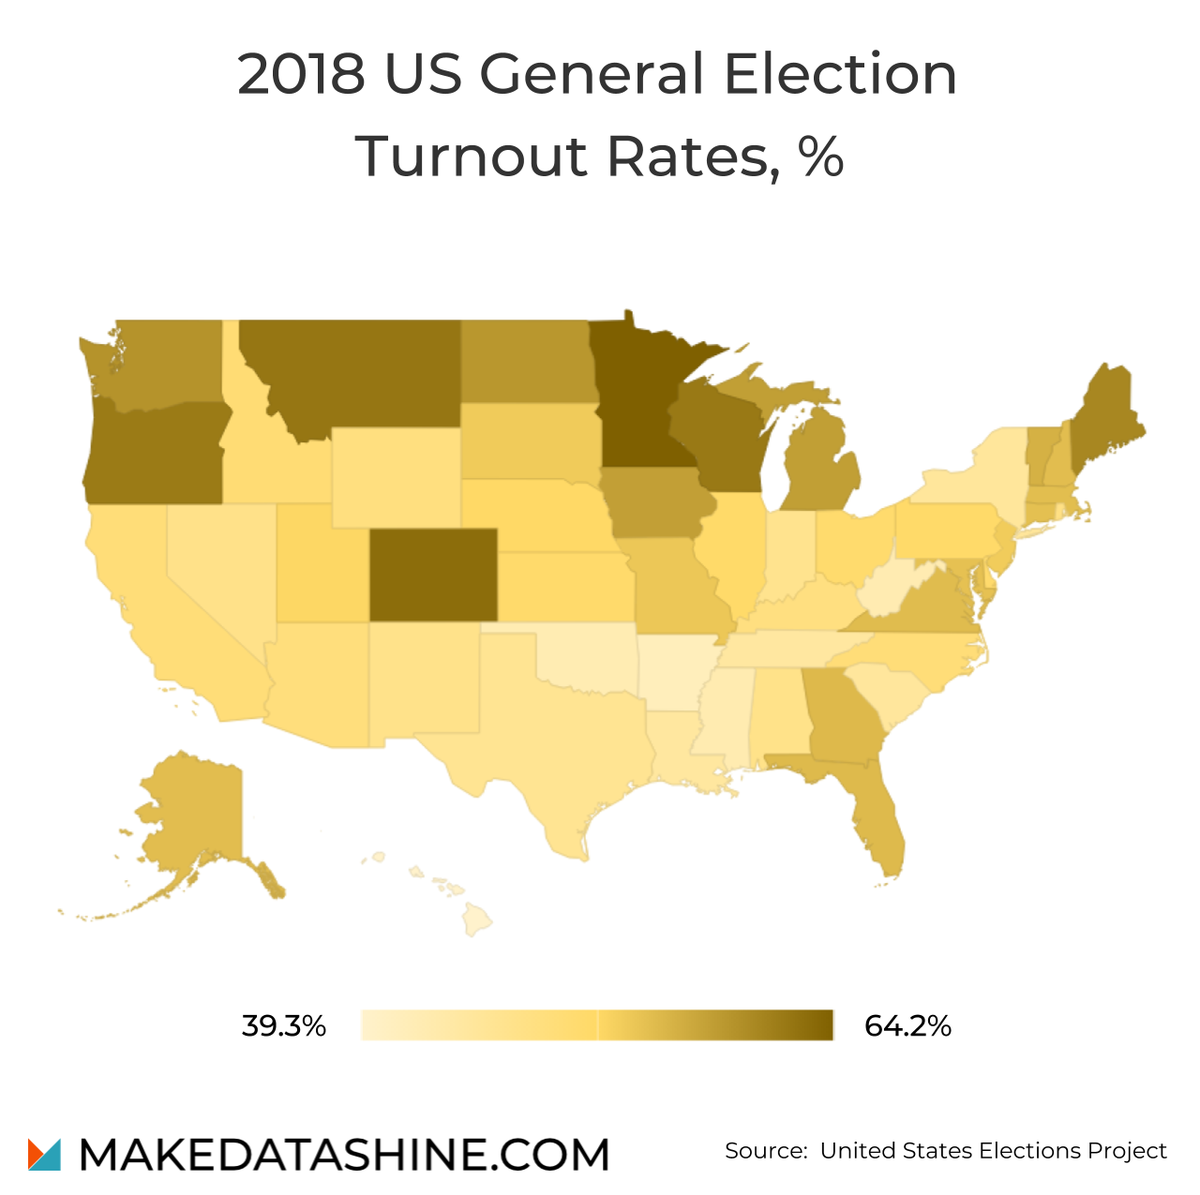 2018 November General Election: Turnout Rates Source:  http://www. electproject.org/2018g  &nbsp;   #datage #mds #makedatashine #politics #Trump #republicans #democrats #liberal #conservative #politics #economics #economy #midterms2018 #potus #america #approval #election #maps #polls #election2020<br>http://pic.twitter.com/3wKuO8vMTP